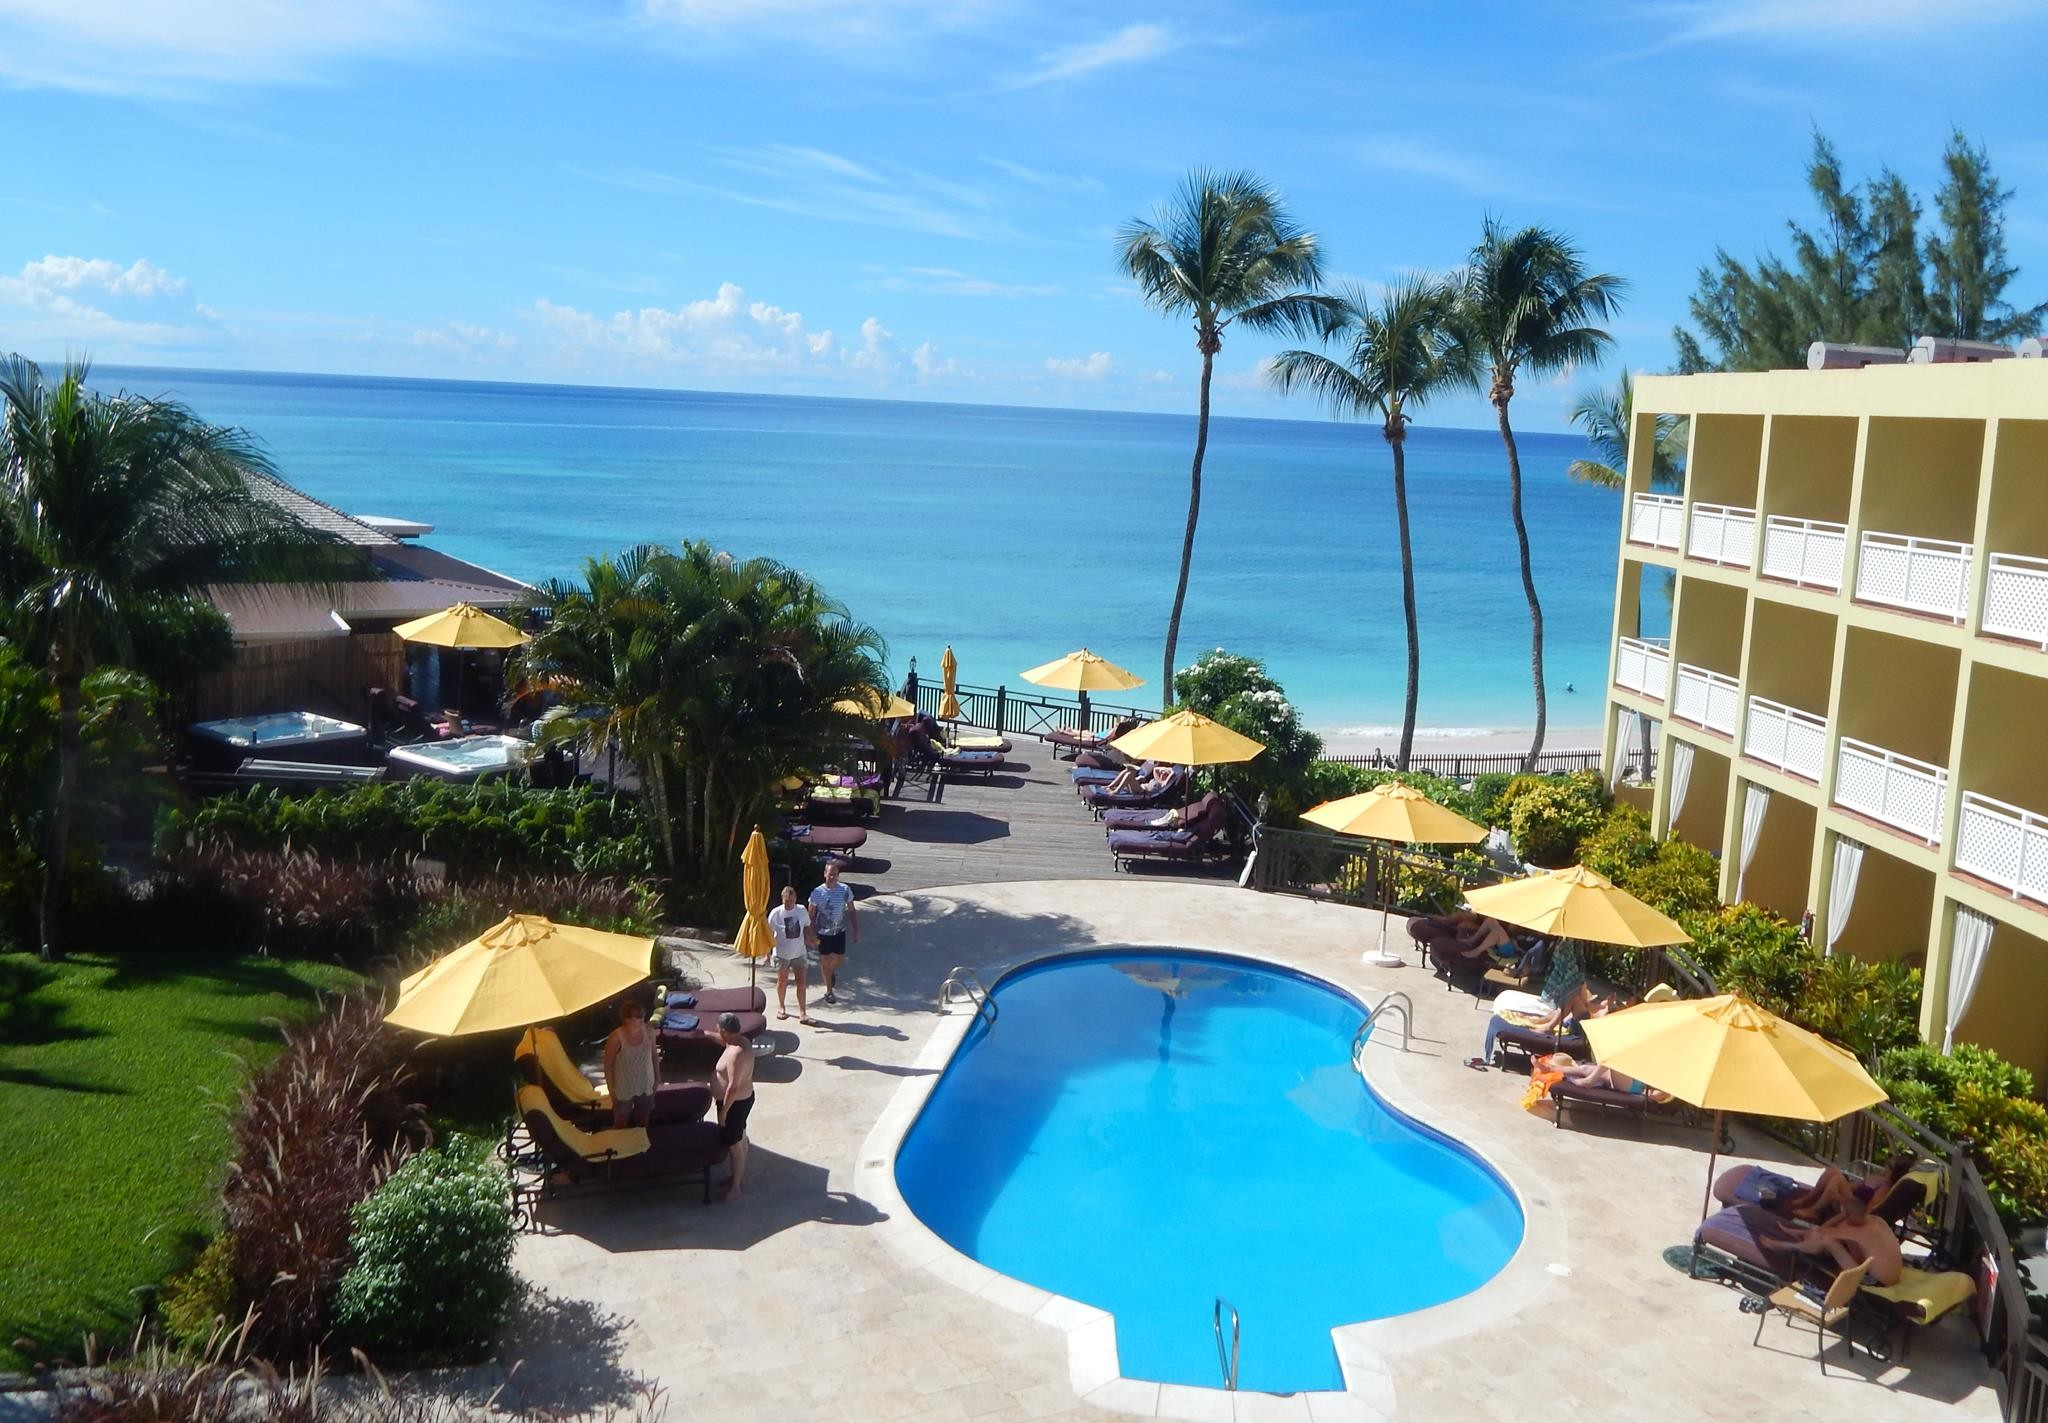 Sea Breeze Beach Hotel Reviews – 3.5 Star All Inclusive